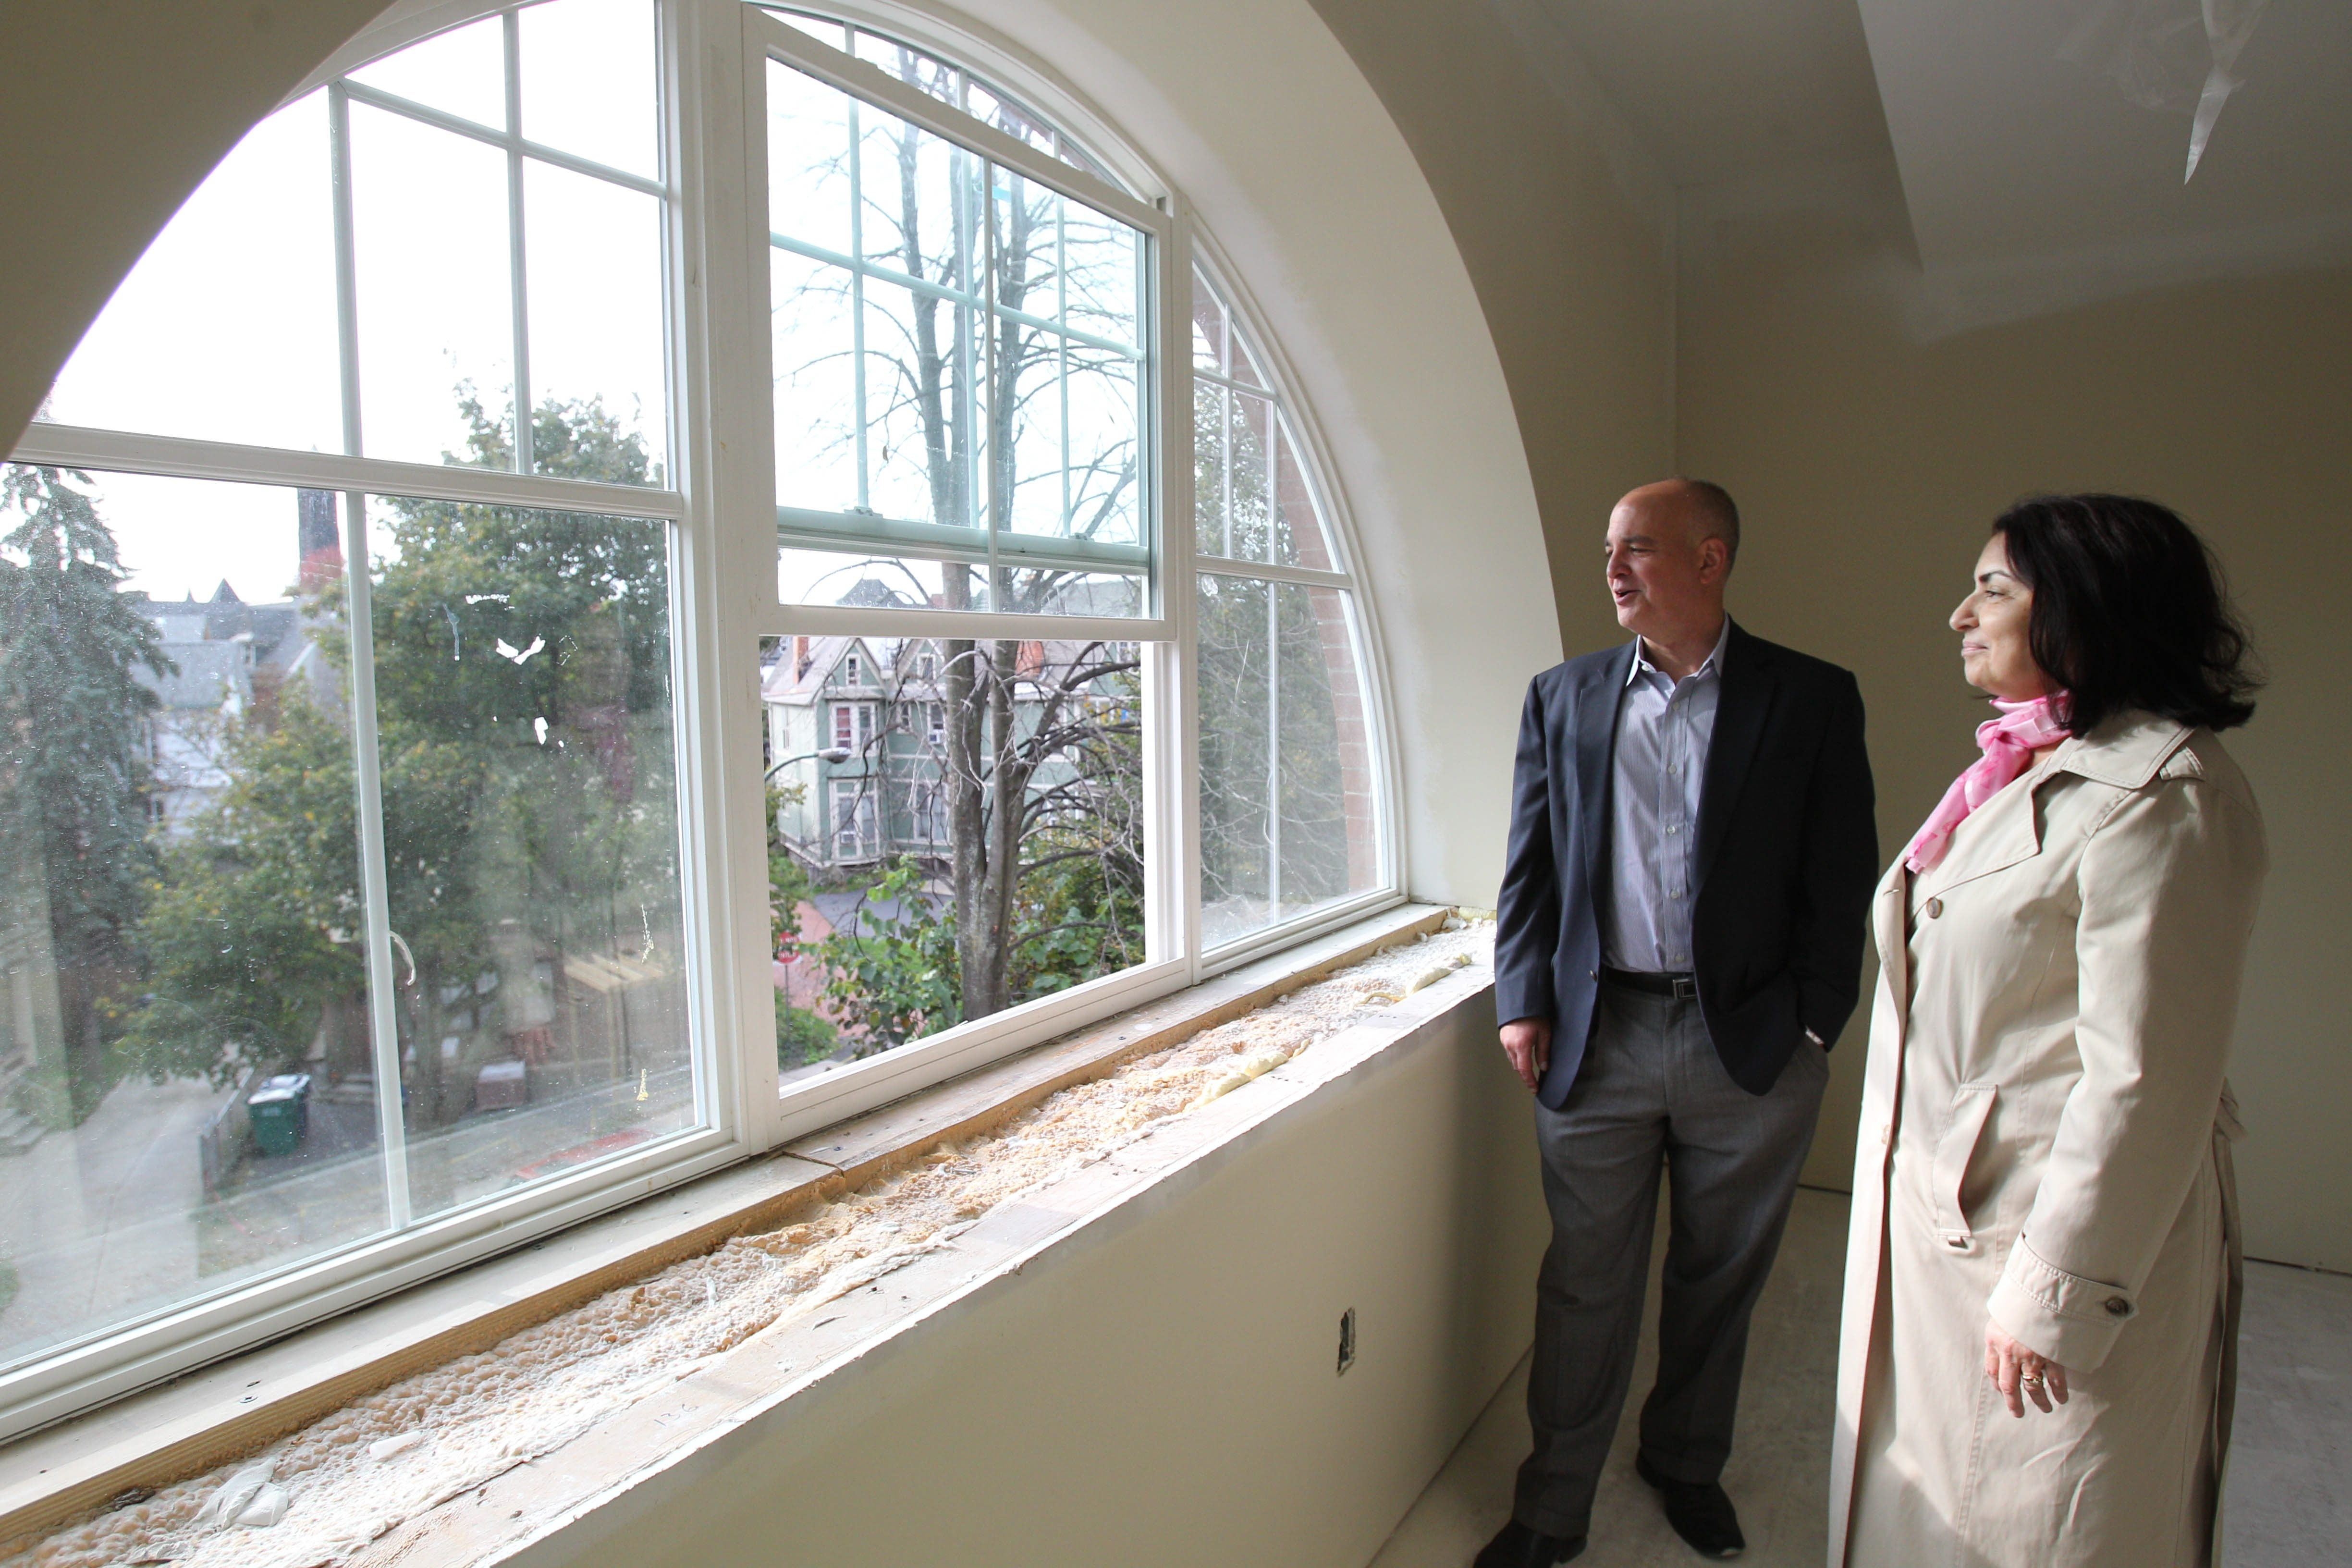 Developer Sam Savarino and Linda Chiarenza, executive director of Westside Neighborhood Housing Services, the not-for-profit sponsor of the site, tour the new apartments that will be completed soon at the former White's Livery & Boarding Stables on Jersey Street.